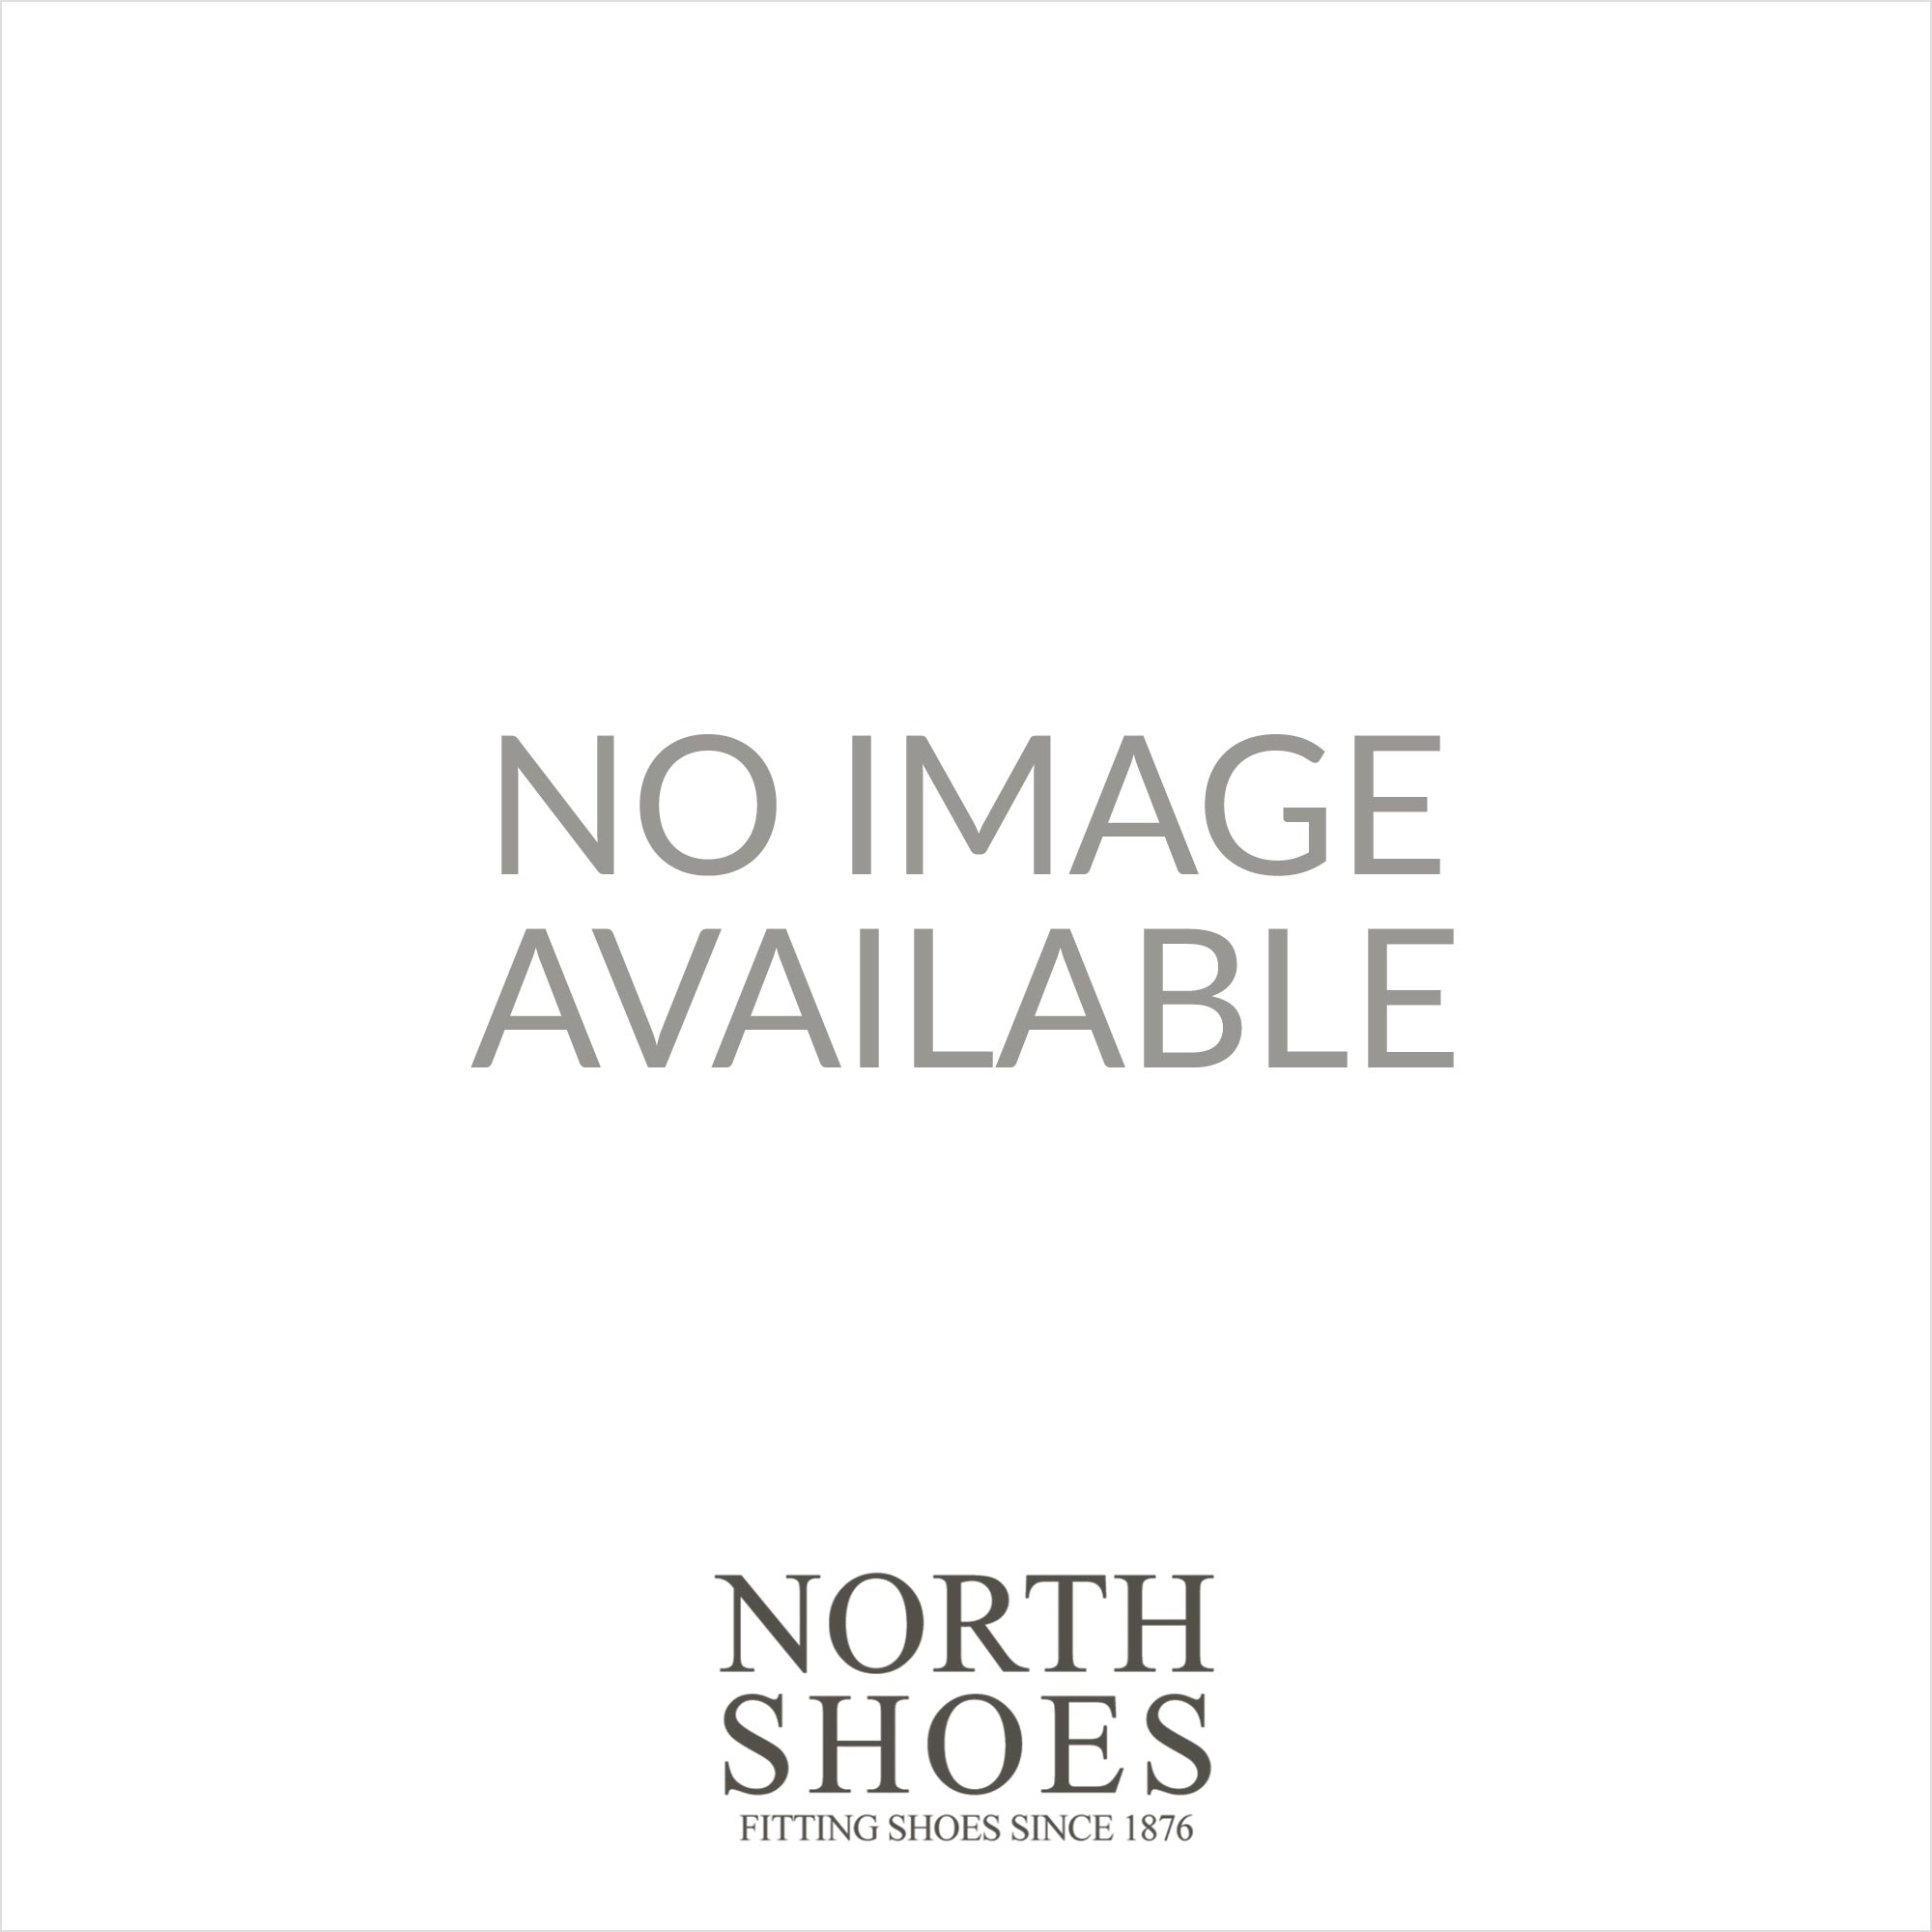 SHOPBOP - Sandals FASTEST FREE SHIPPING WORLDWIDE on Sandals & FREE EASY RETURNS.